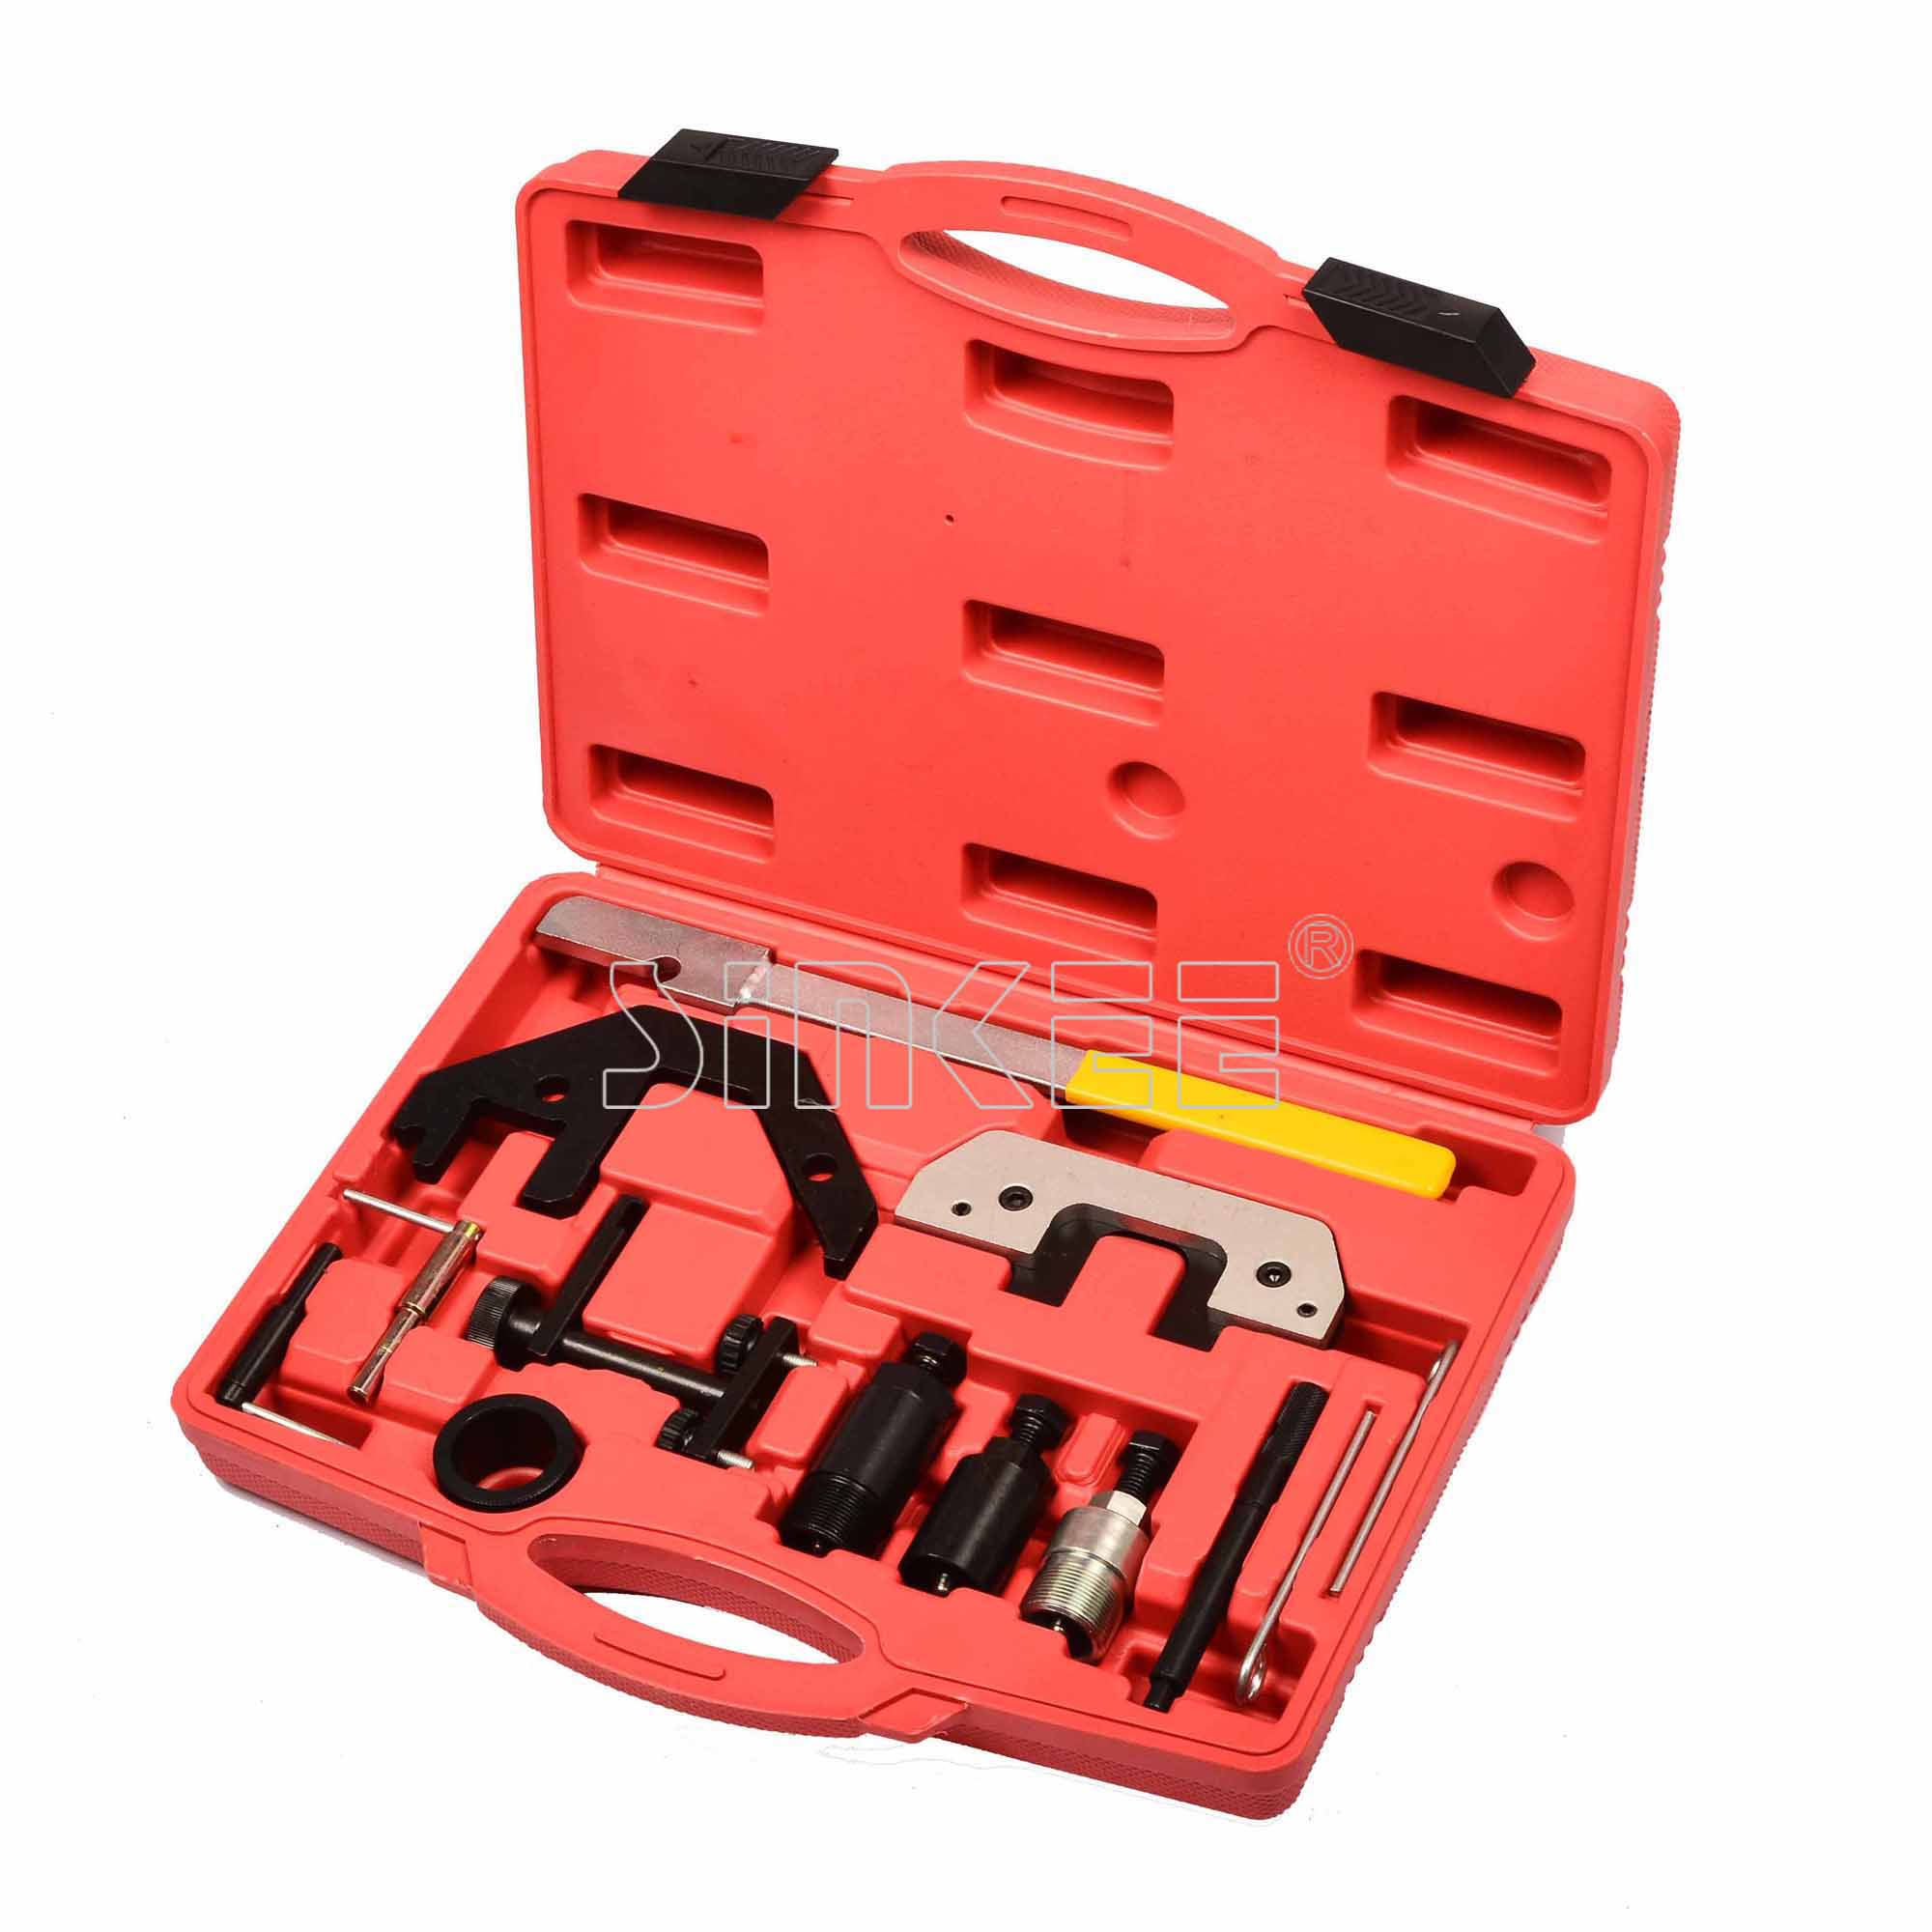 13 Pc Engine Timing Tool Kit For Bmw / land Rover Diesel Engines Professinal Master Kit petrol engine timing tool kit for land rover freelander rover mgzt v6